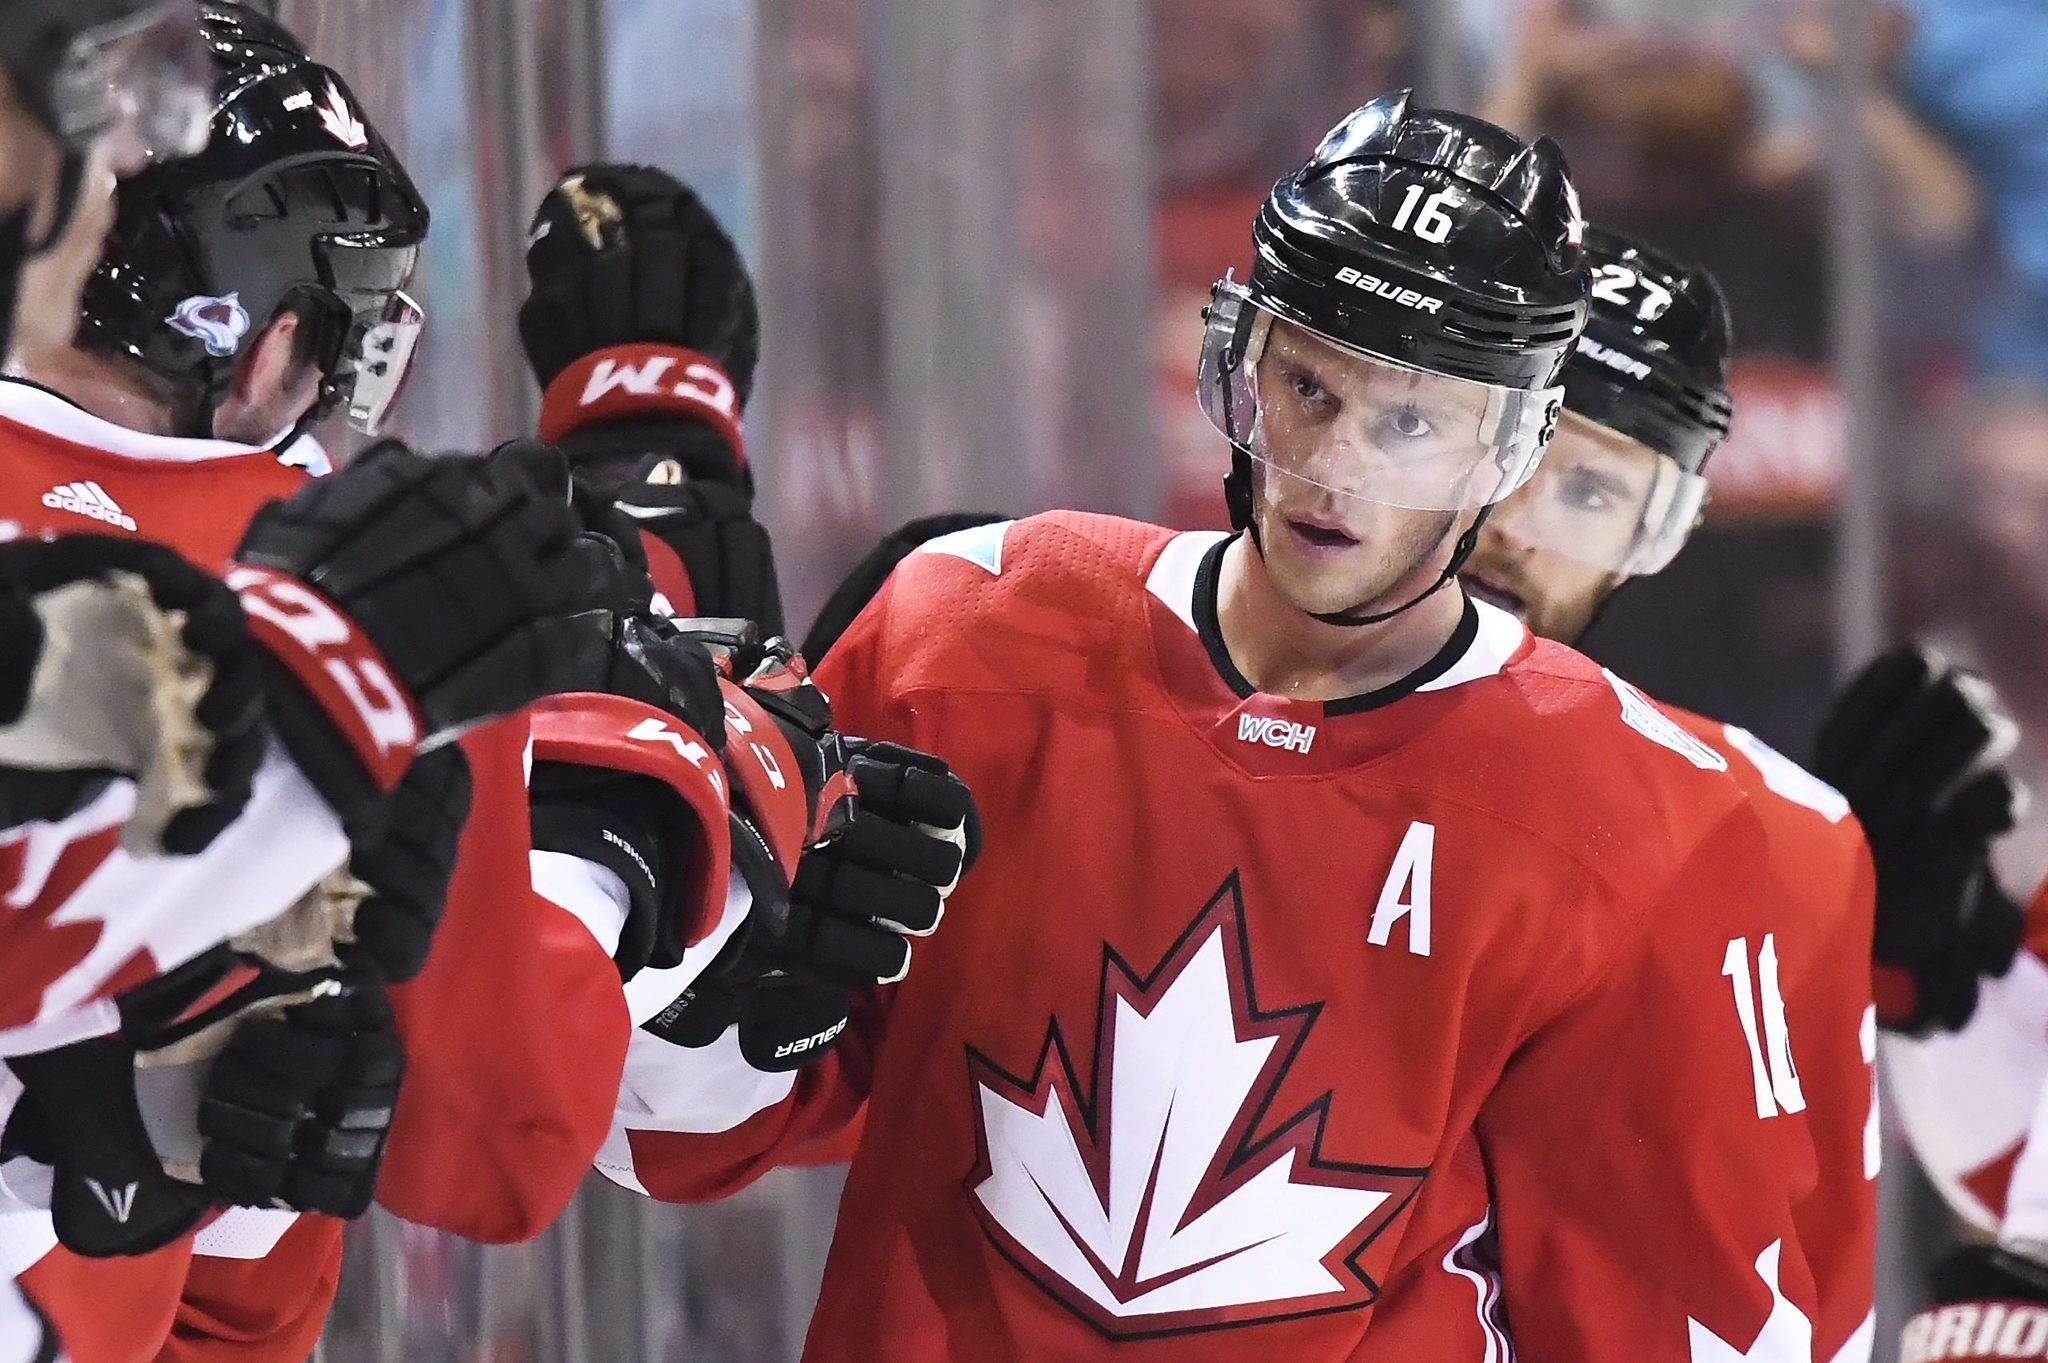 Ct-toews-kane-world-cup-hockey-spt-0923-20160922